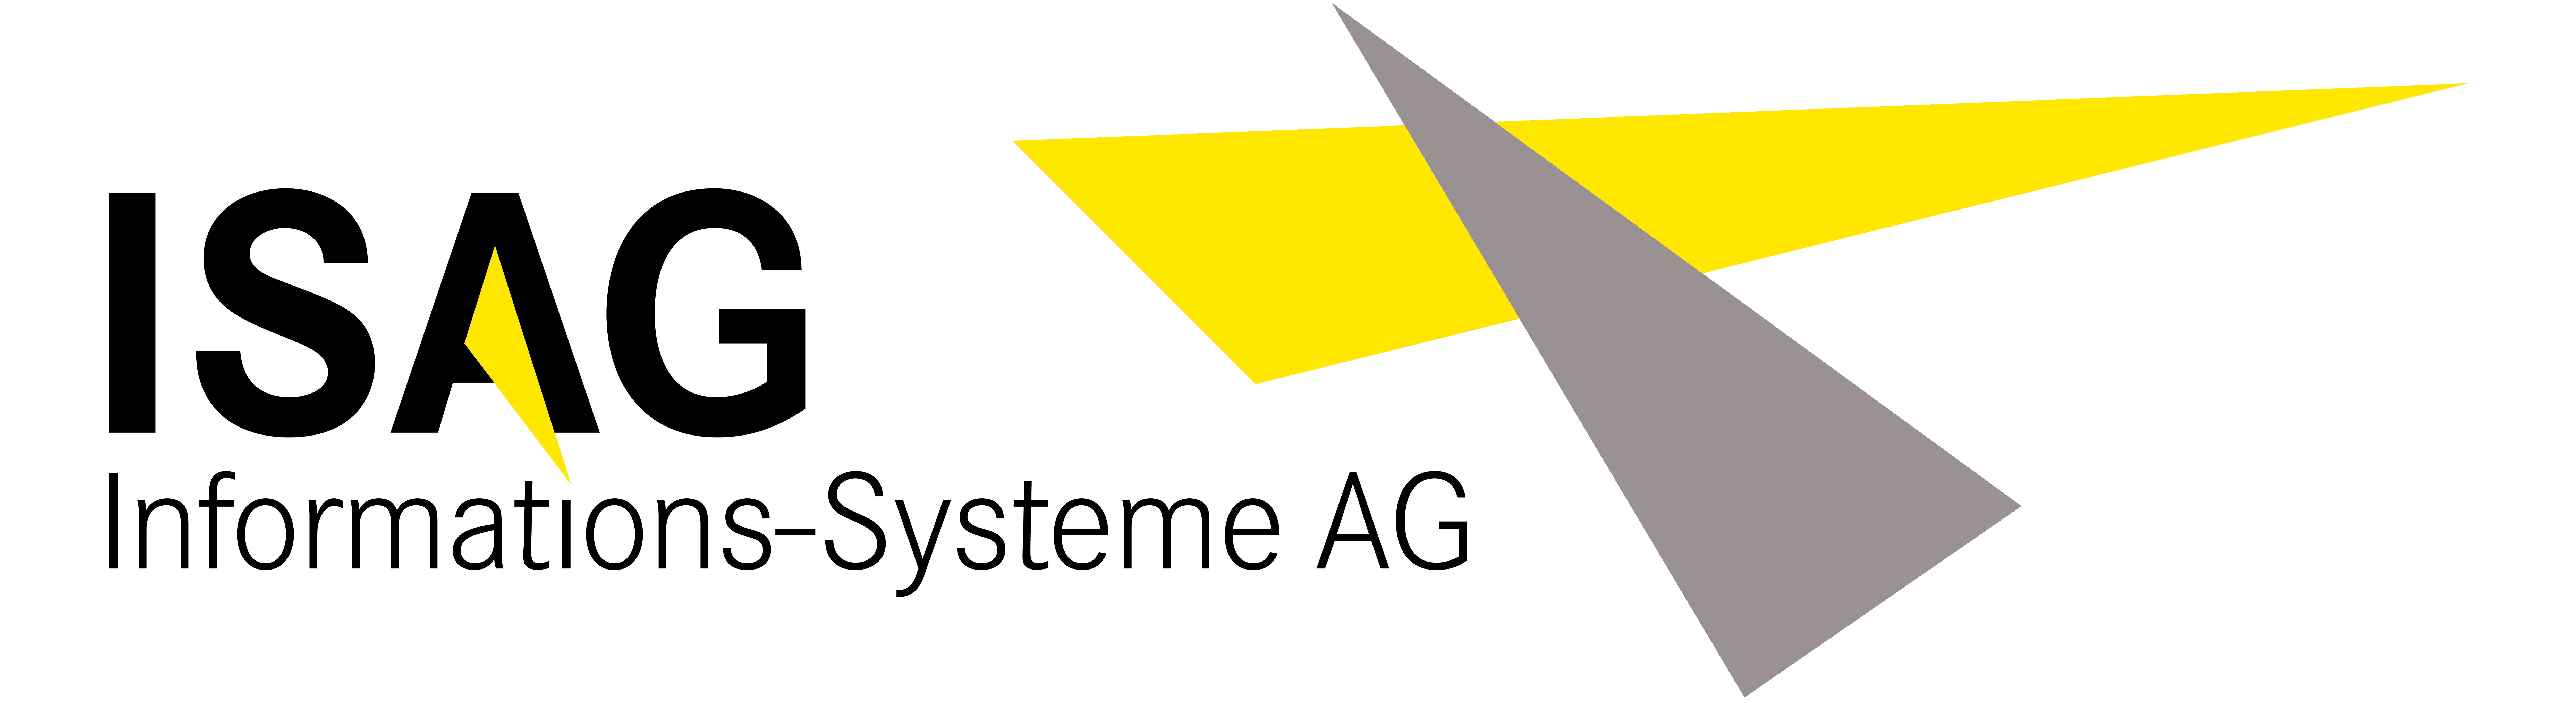 ISAG Informations-Systeme AG